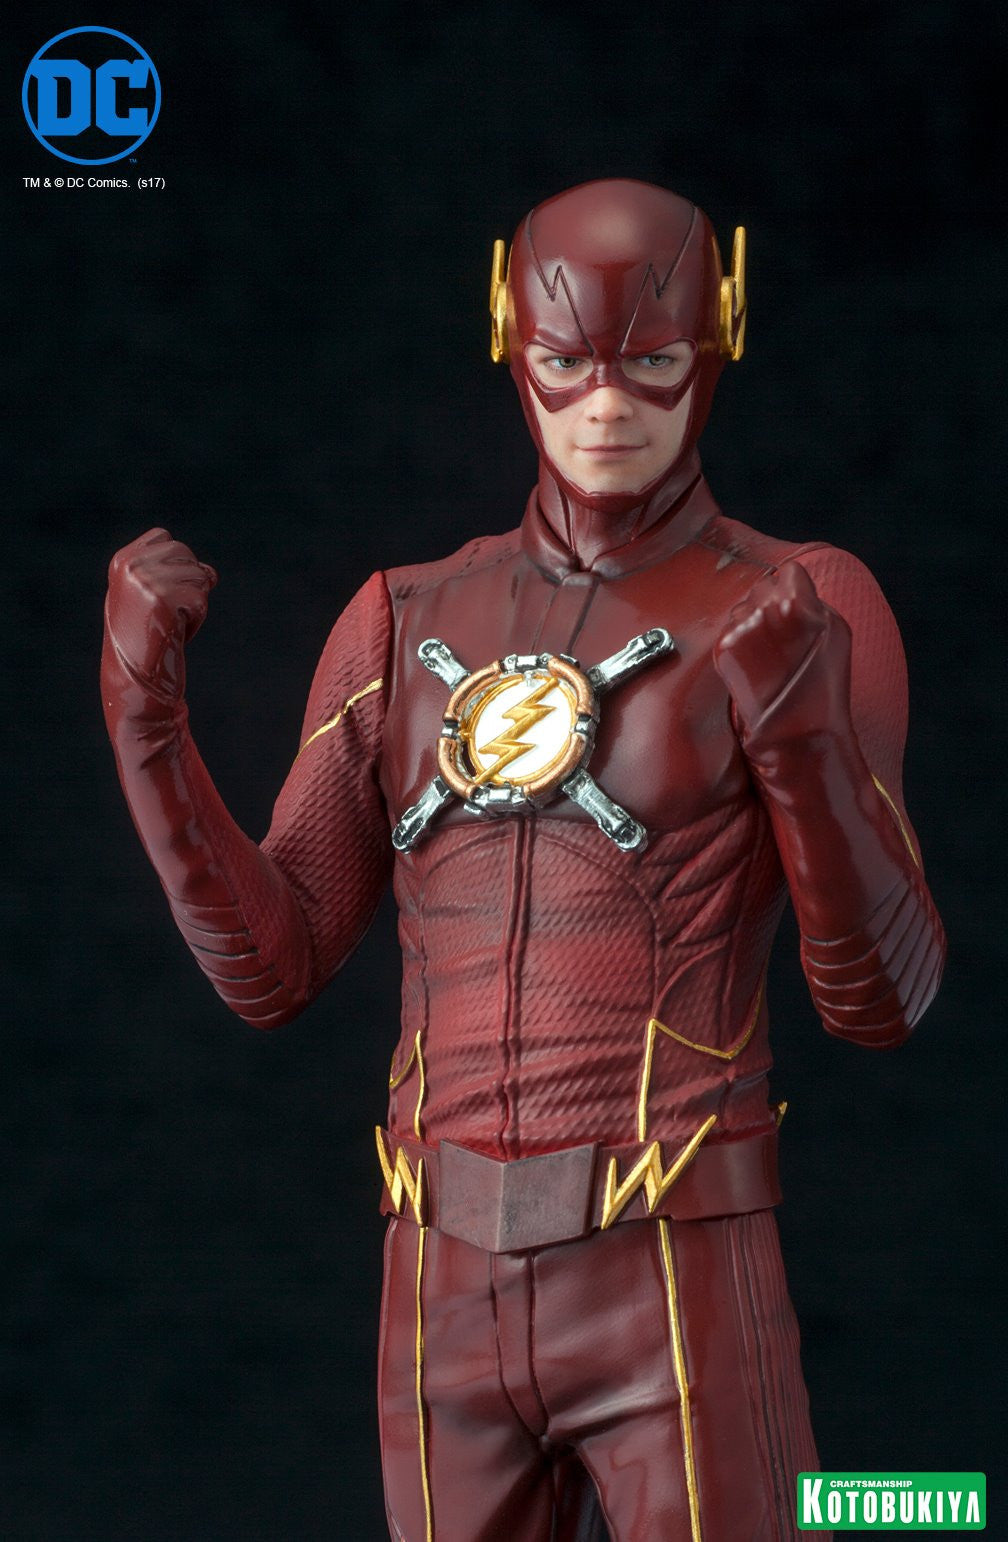 Kotobukiya - ARTFX+ - The Flash TV Series -  Tachyon Enhanced Flash (Limited Edition)